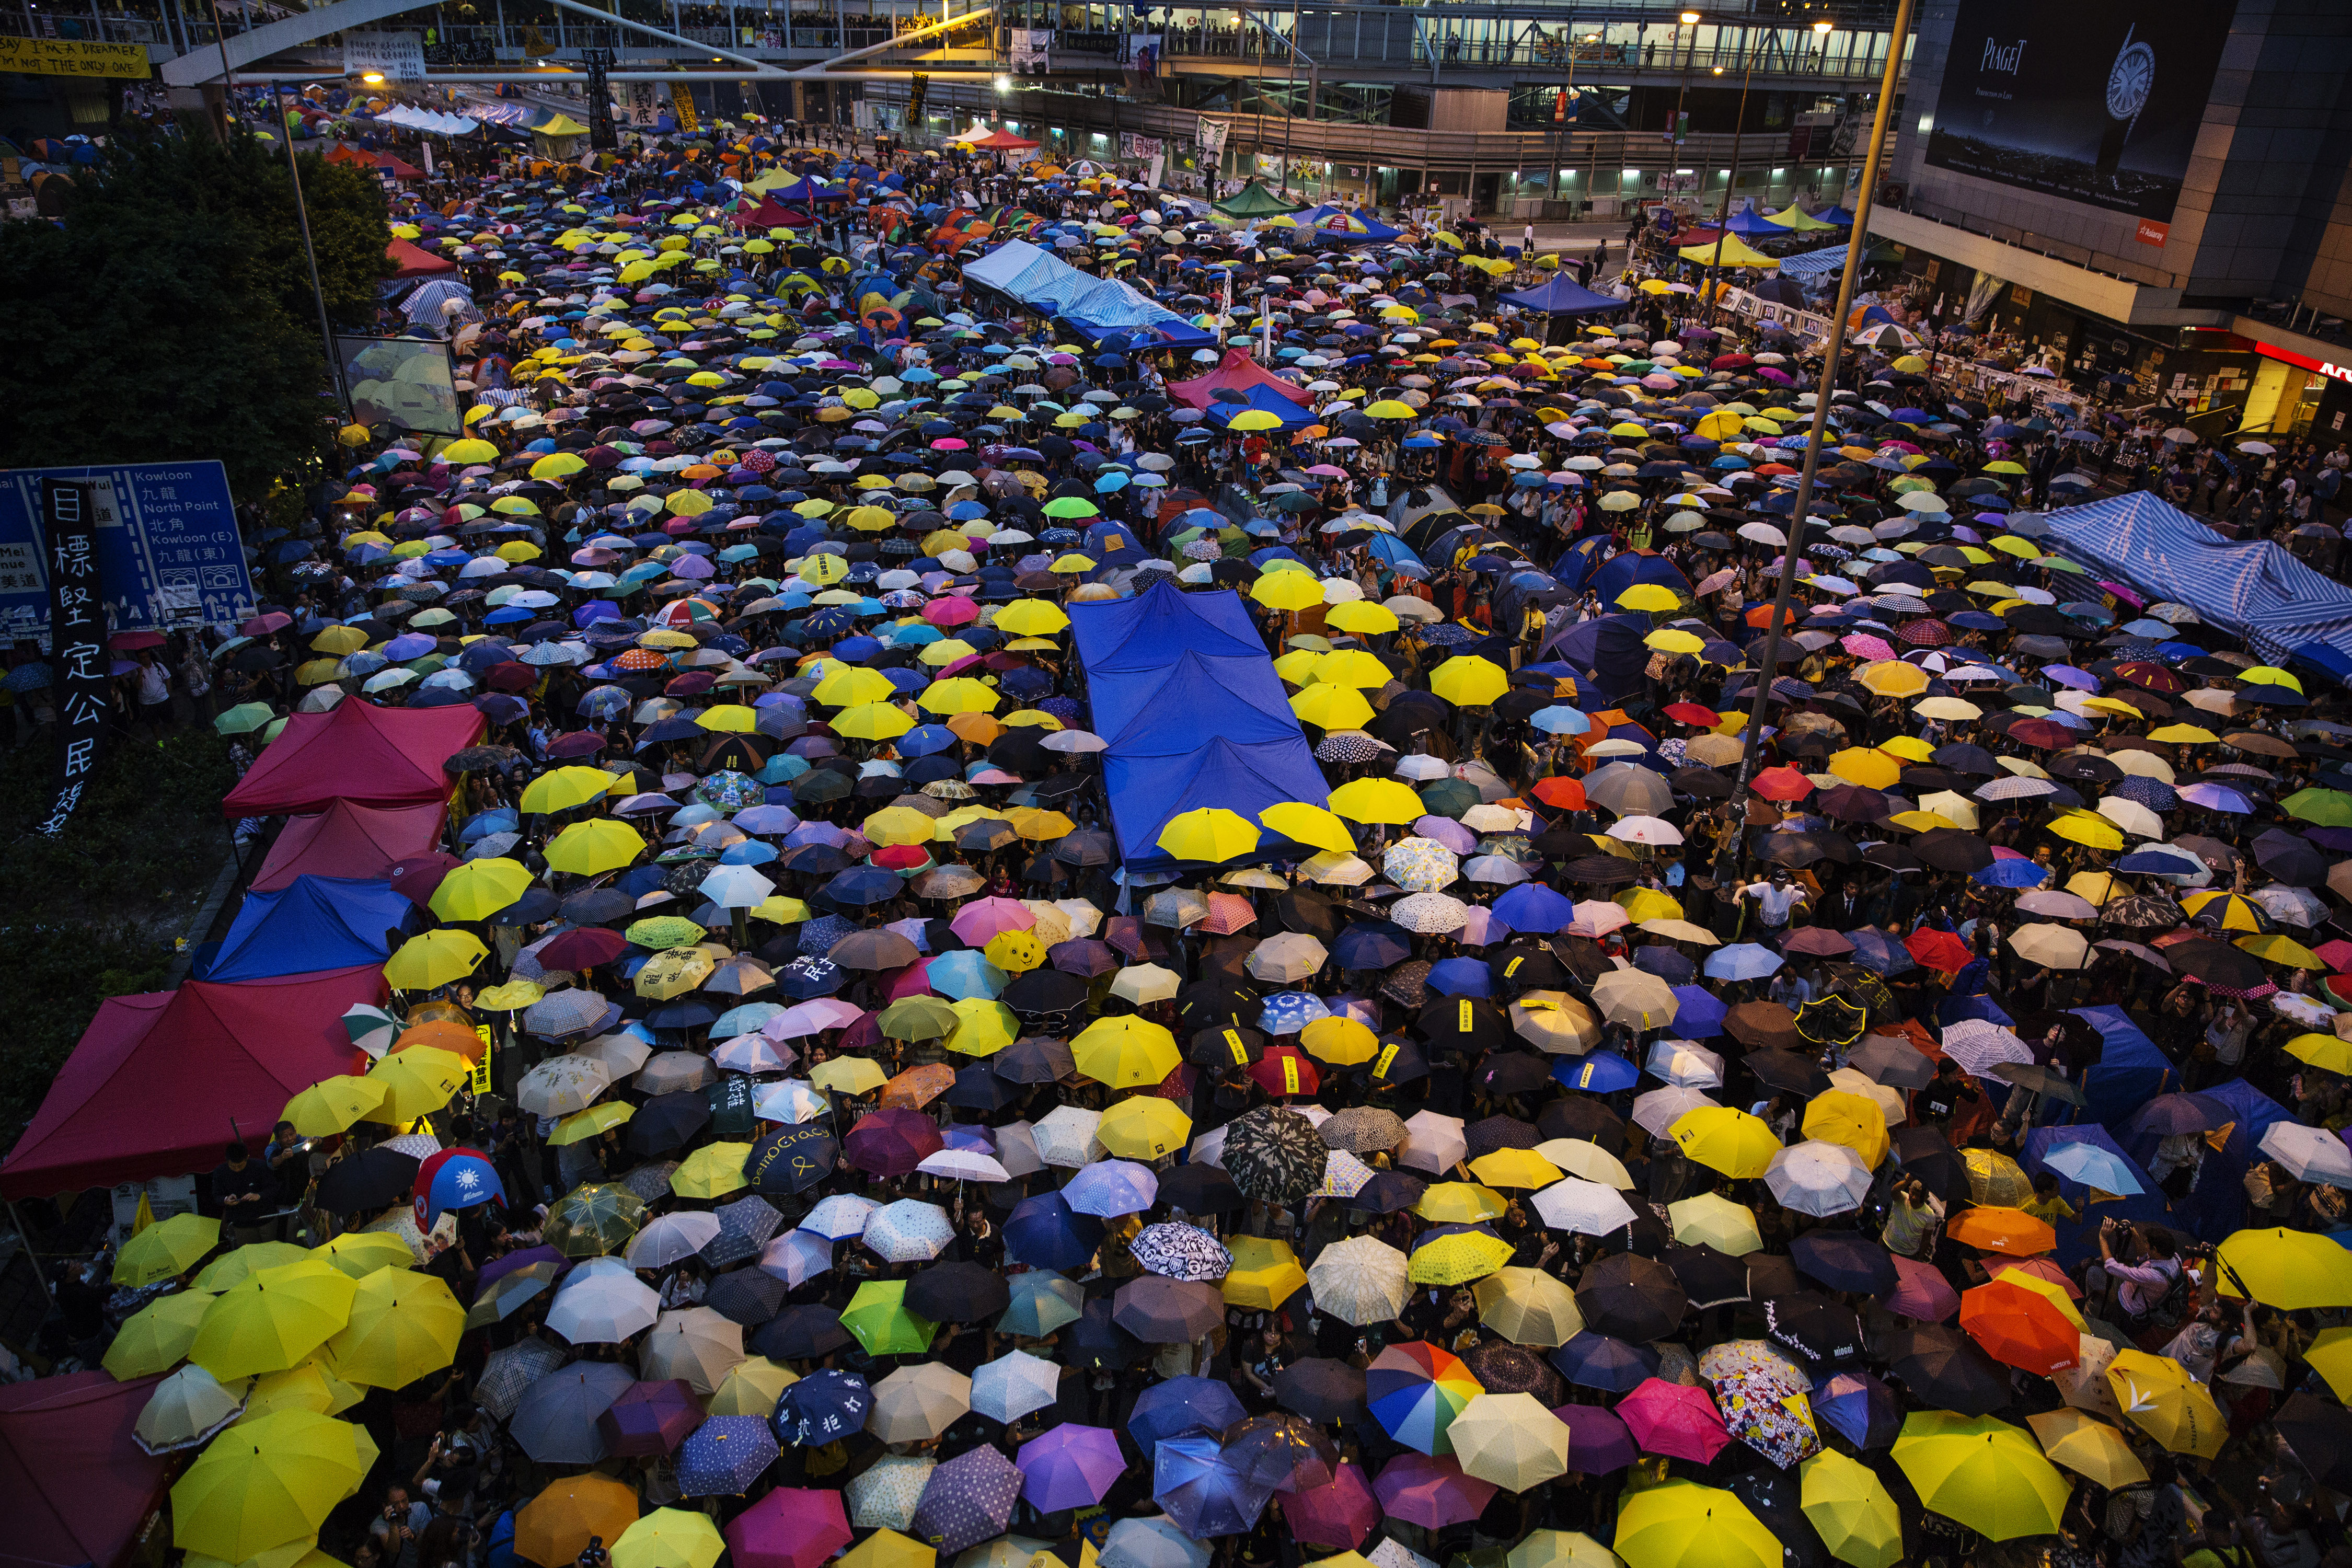 Tens of thousands protest one month after the Hong Kong police used tear gas to disperse protesters Oct. 28, 2014 in Hong Kong.